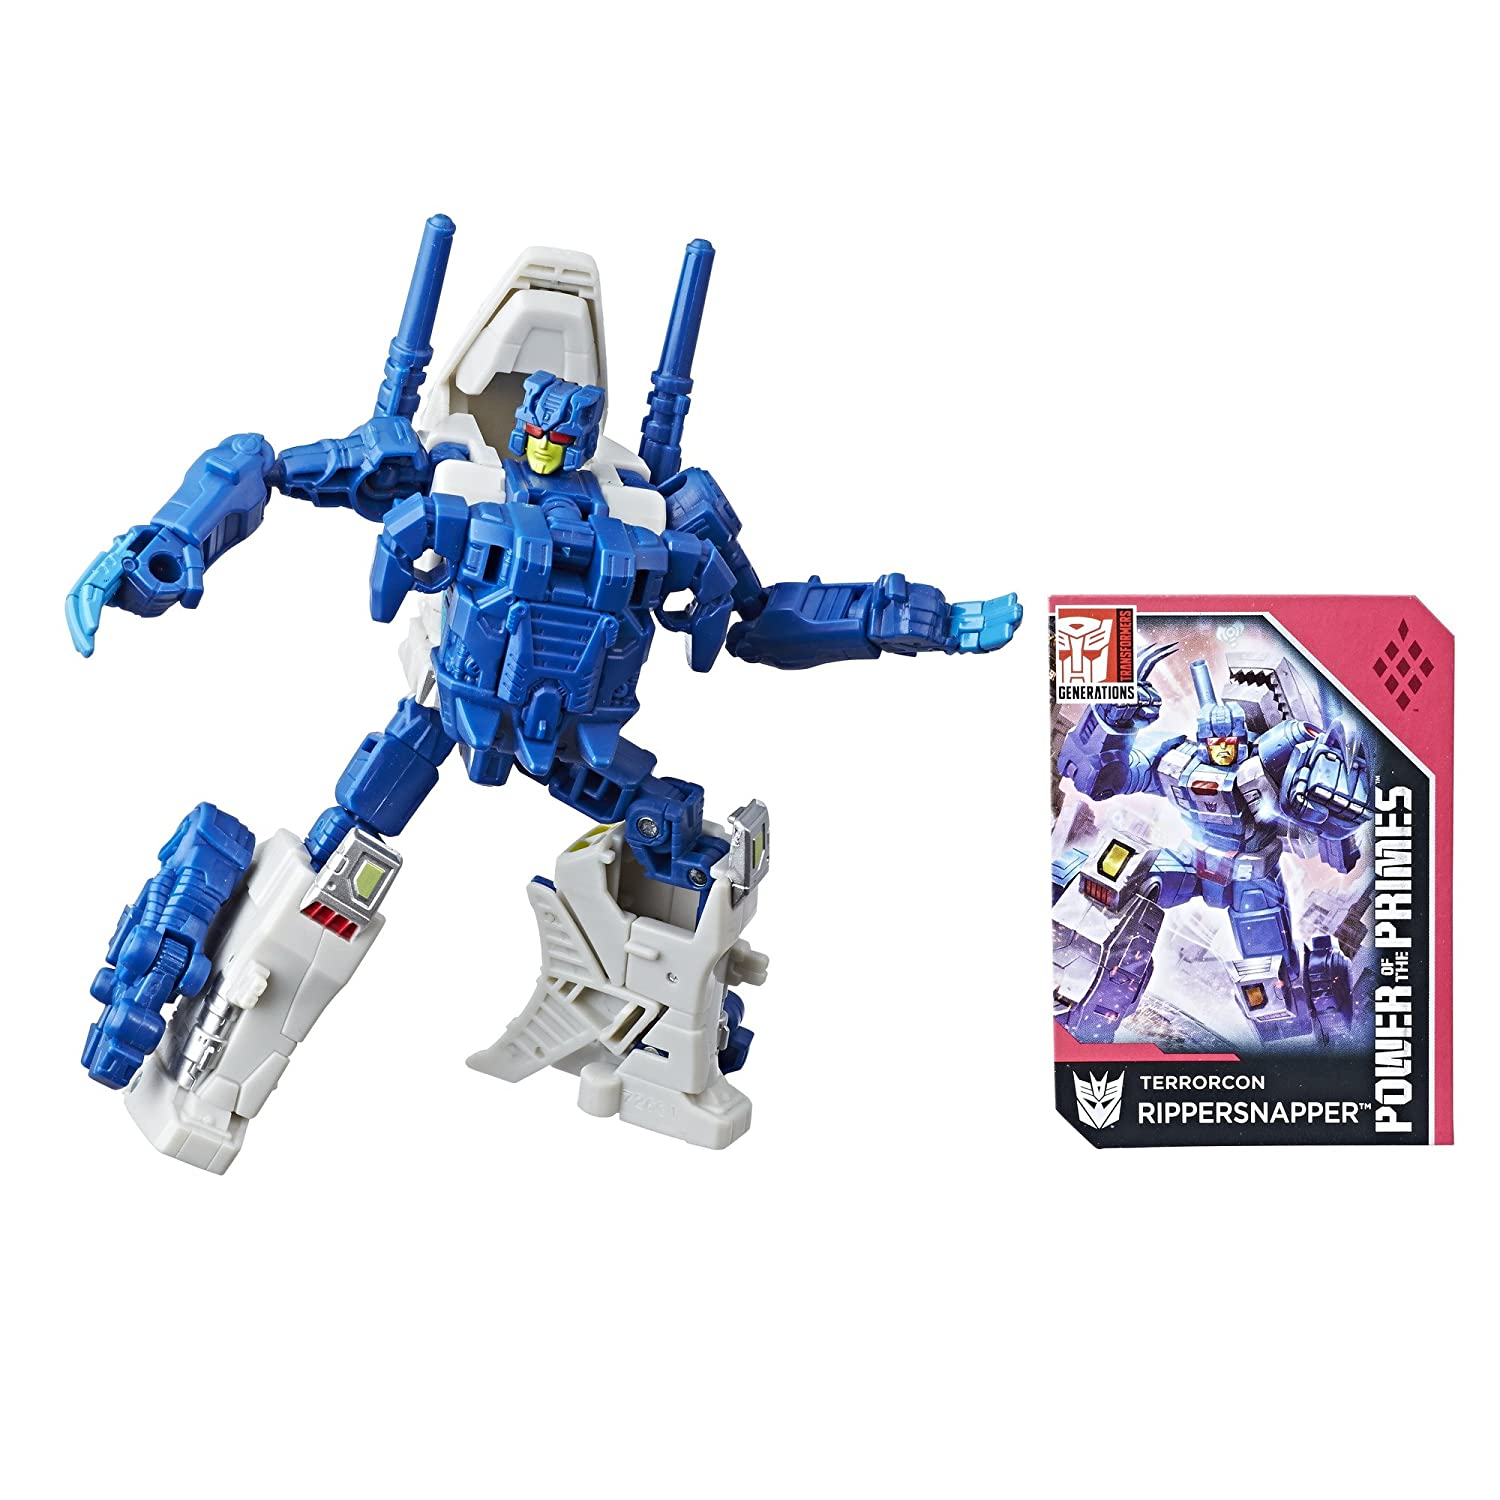 Transformers Generations Power of the Primes Deluxe Terrorcon Rippersnapper Hasbro E1129